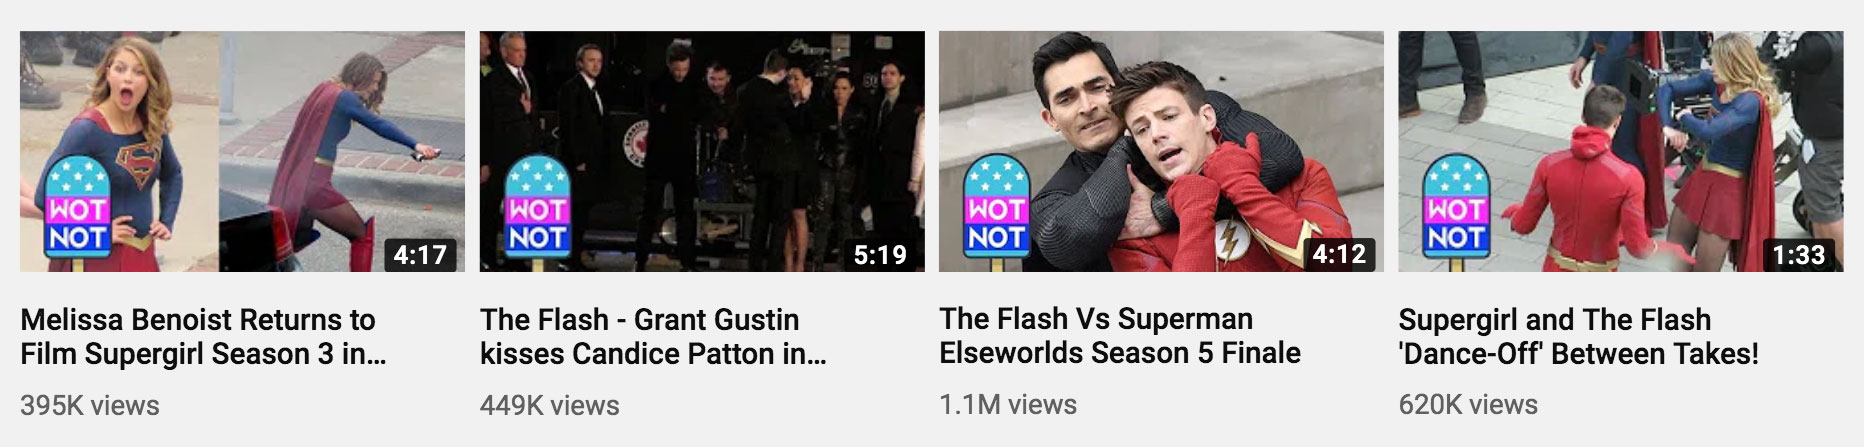 Supergirl and The Flash are two hugely popular CW TV shows which are getting some great views on our Celebrity WotNot YouTube channel despite not much interest when trying to sell to publishers. Fandoms are also a great new avenue for exposure.